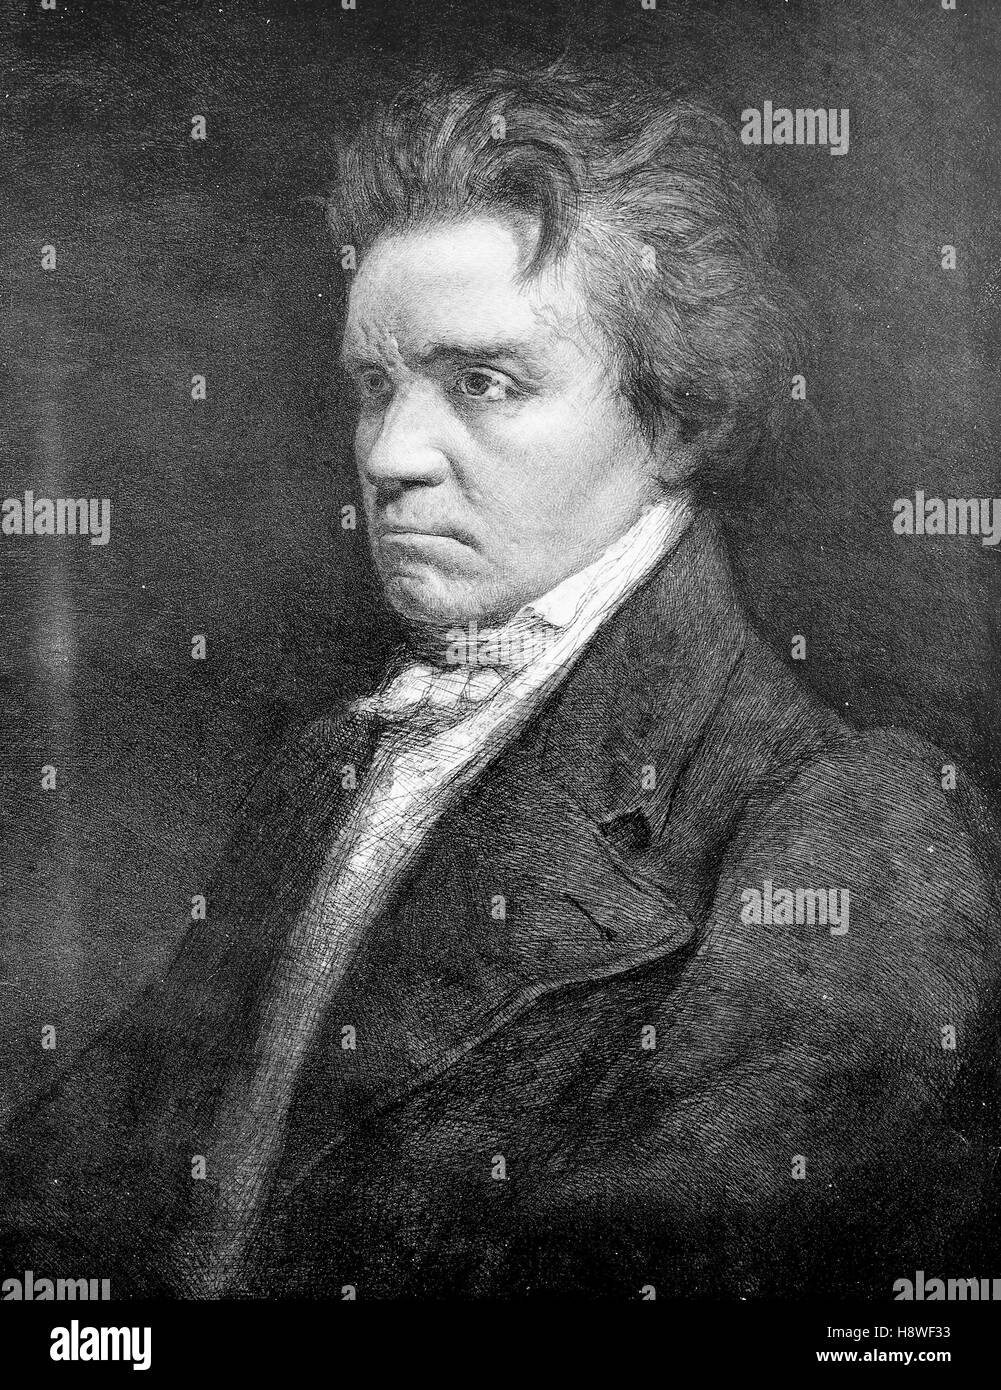 Ludwig van Beethoven was a German composer and pianist - Stock Image